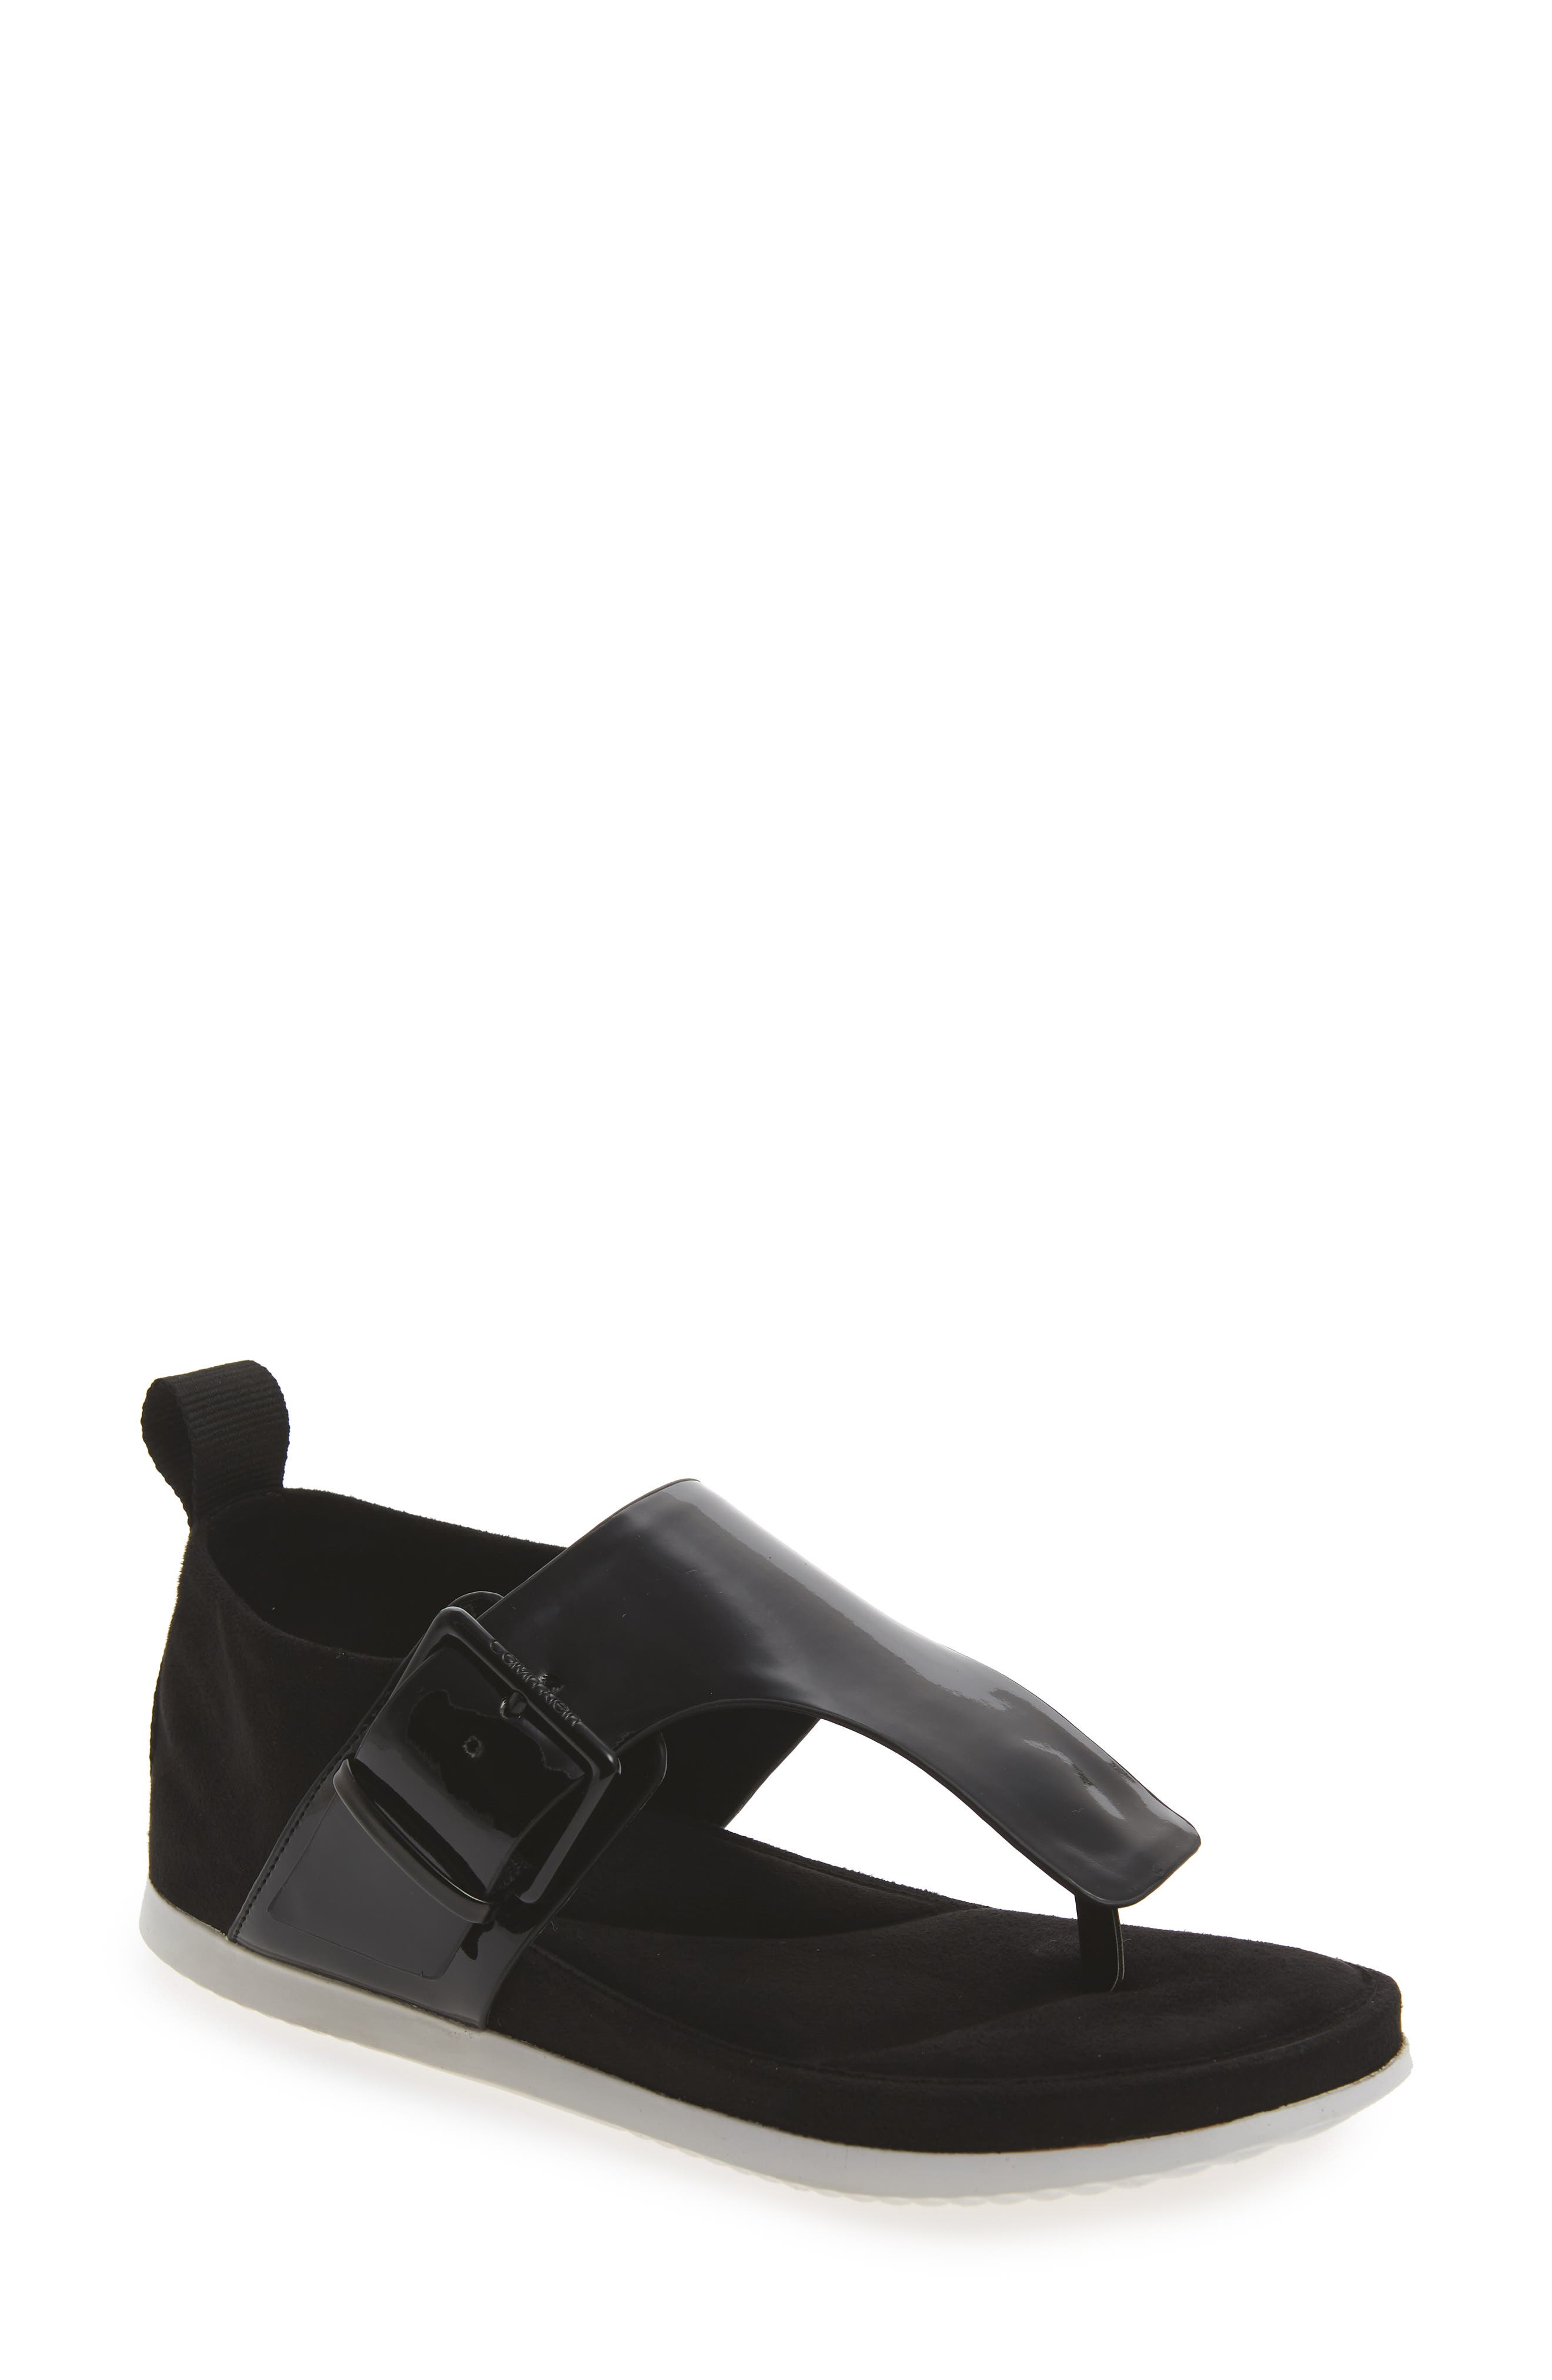 Dionay Wedge Sandal,                         Main,                         color, Black Patent